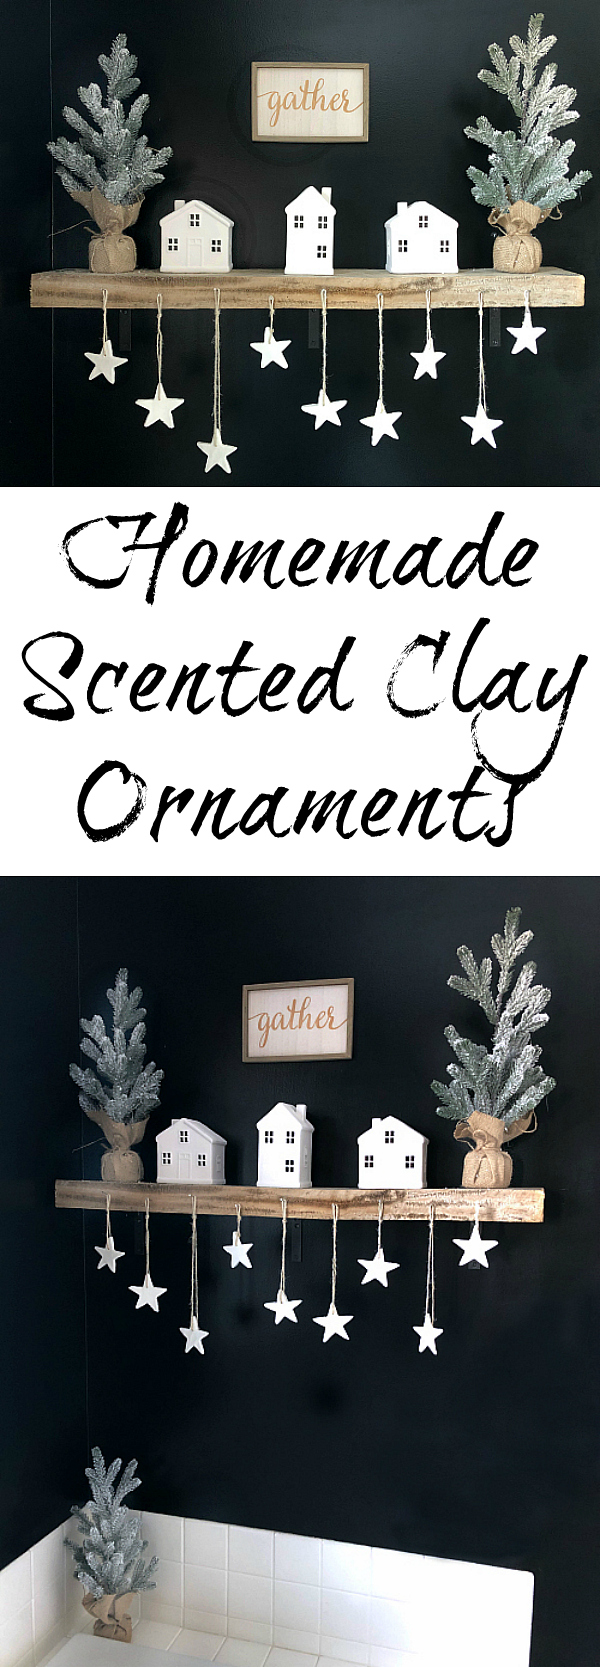 DIY Scented Clay Ornaments Pinterest Image